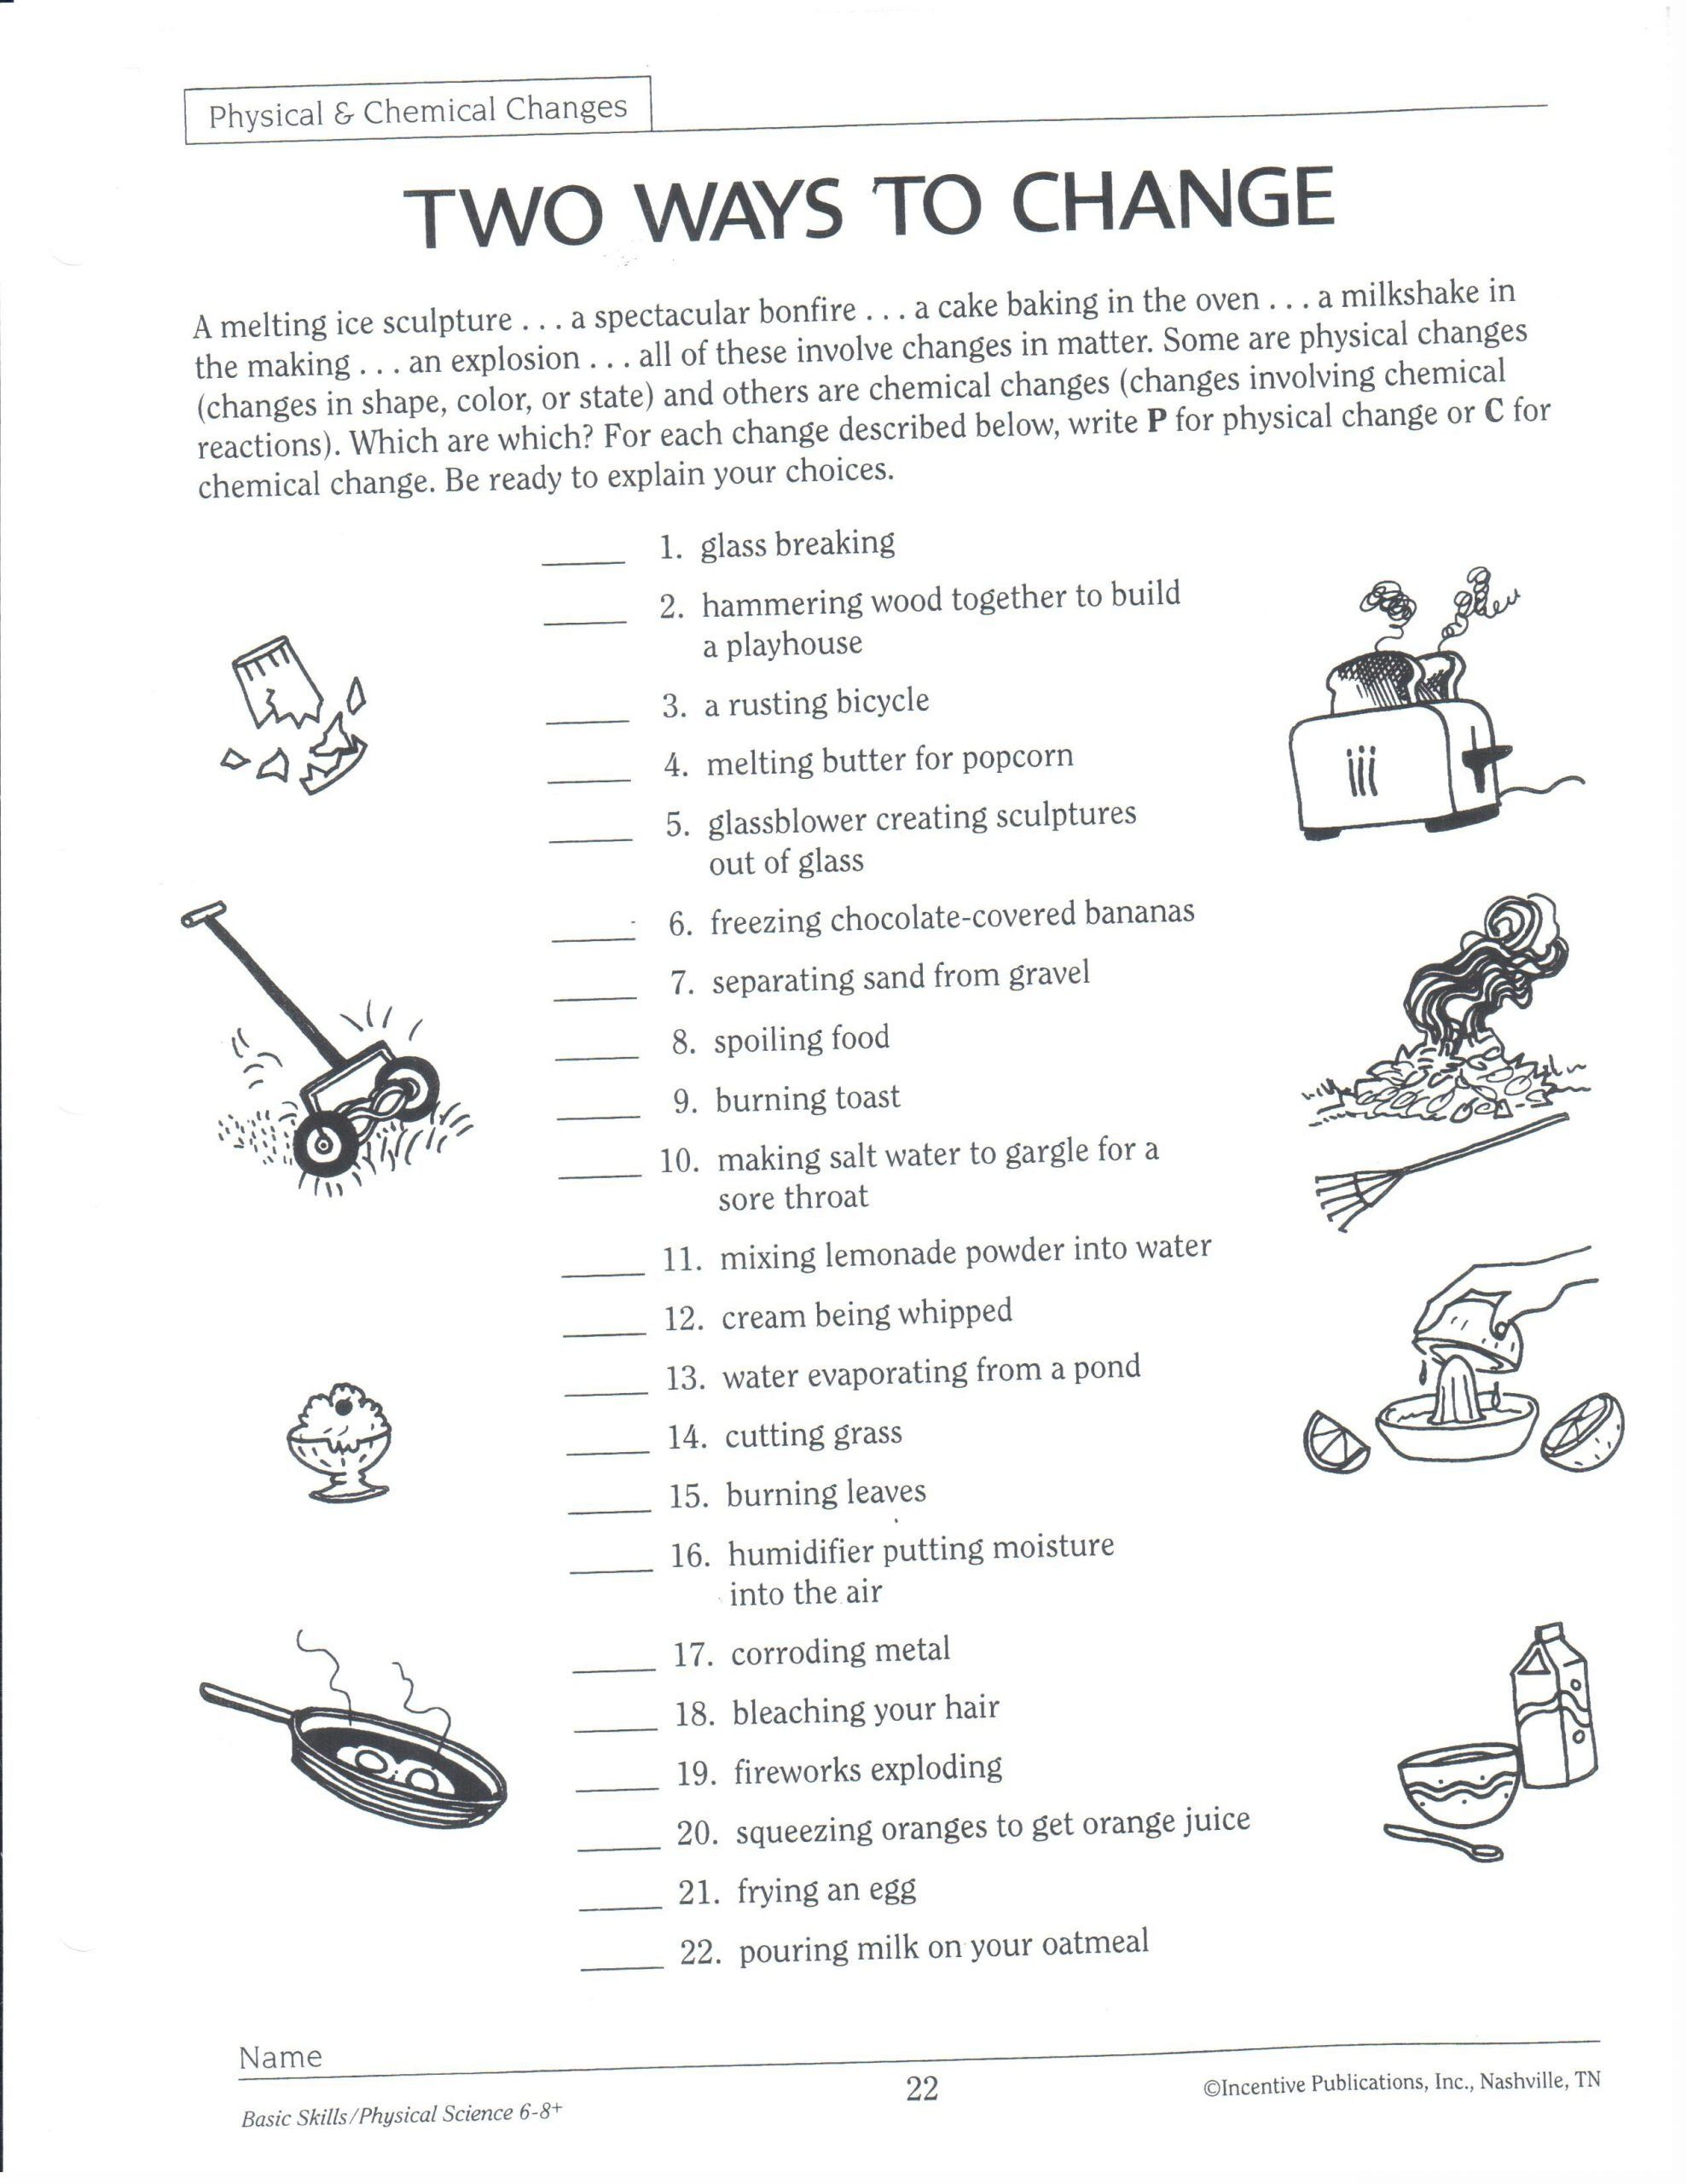 Physical Science Worksheet Answers Two Ways To Change Physical And Chemical Changes Worksheet In 2020 Science Worksheets Physical Science Kids Worksheets Printables